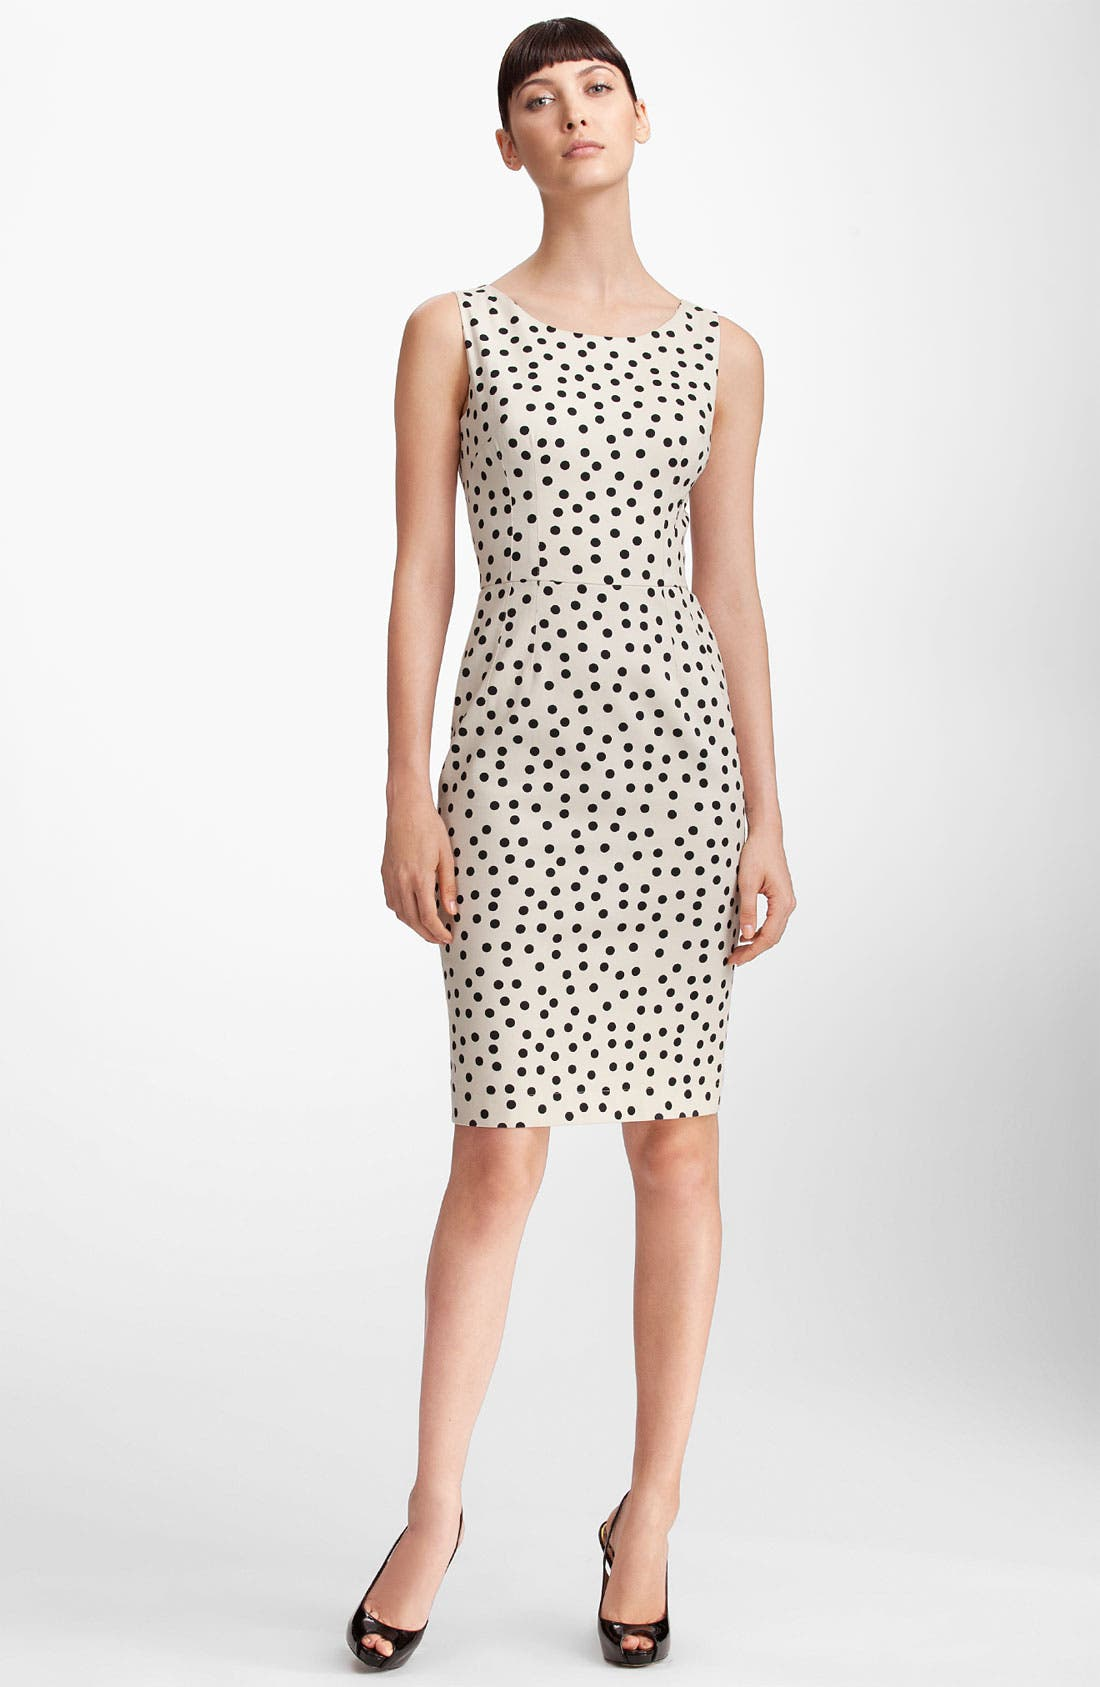 Main Image - Dolce&Gabbana Polka Dot Stretch Cotton Dress